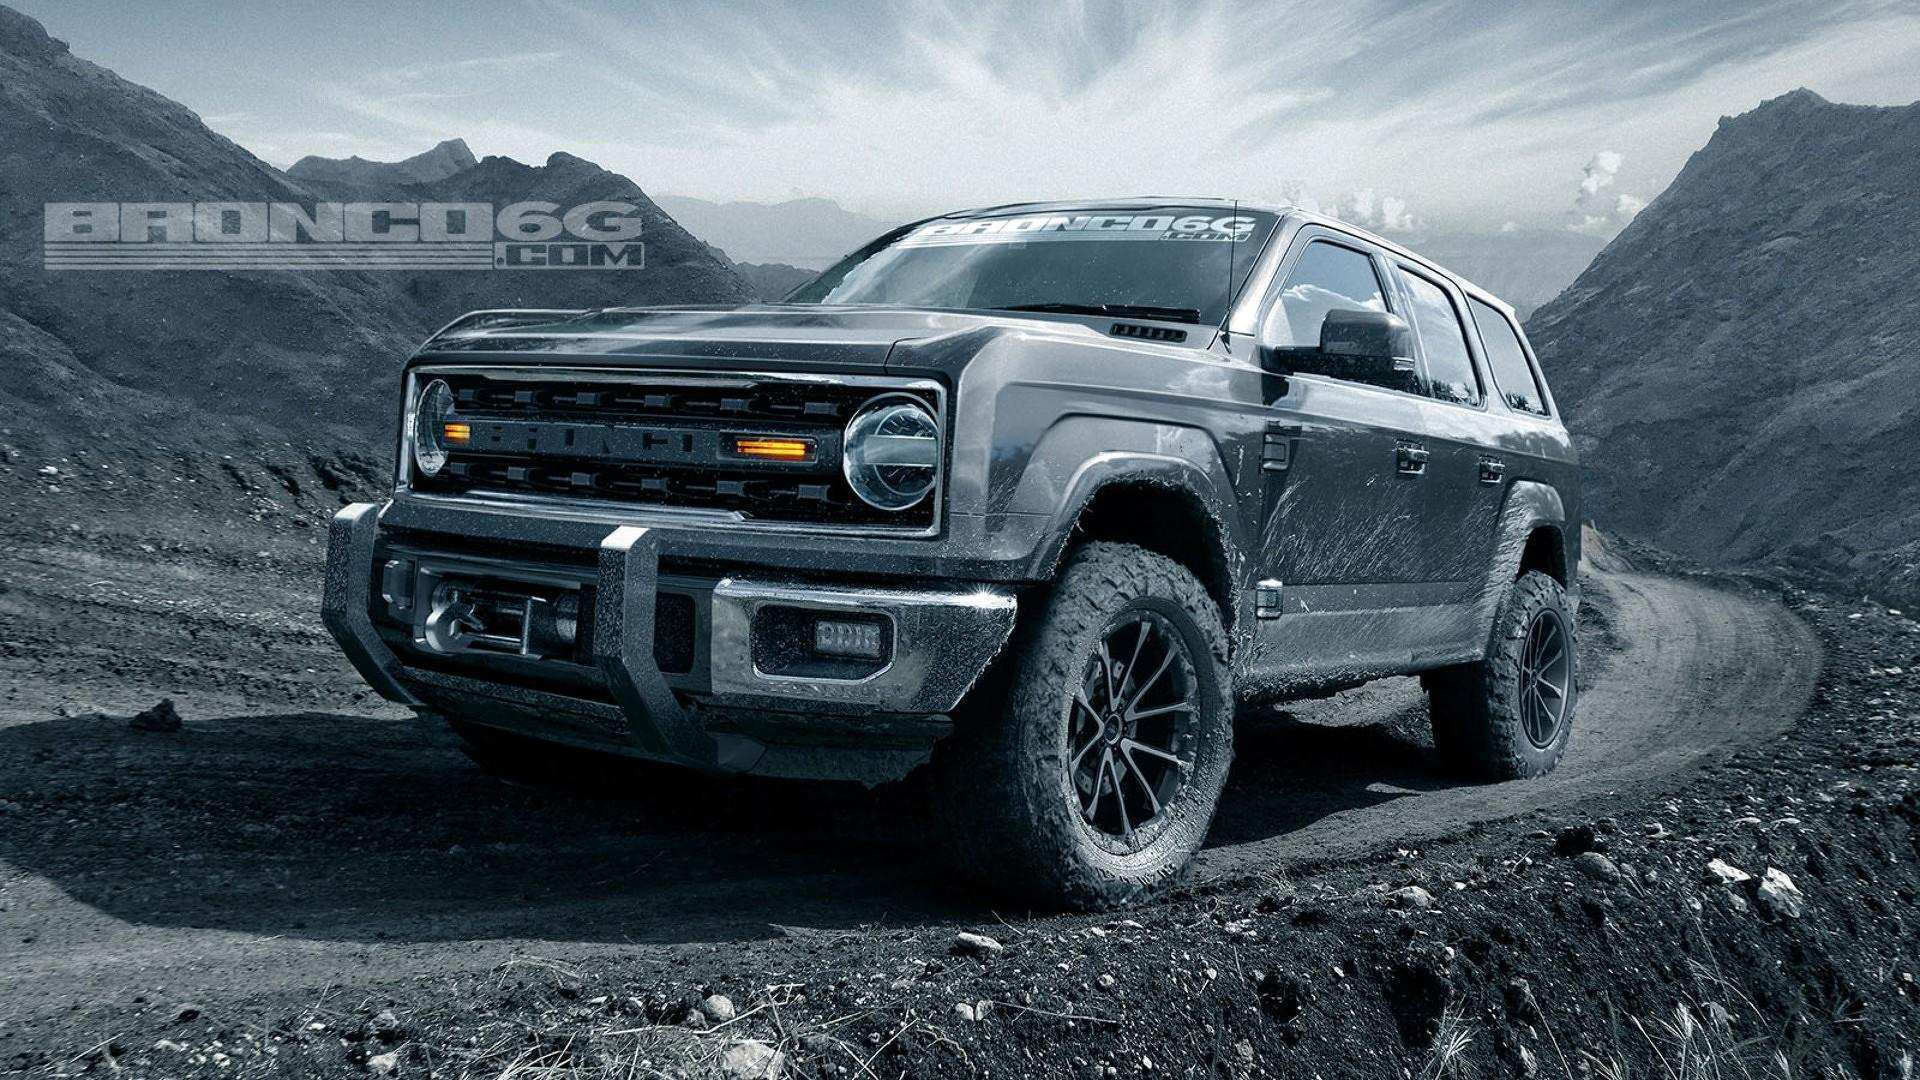 96 Best How Much Is The 2020 Ford Bronco Exterior